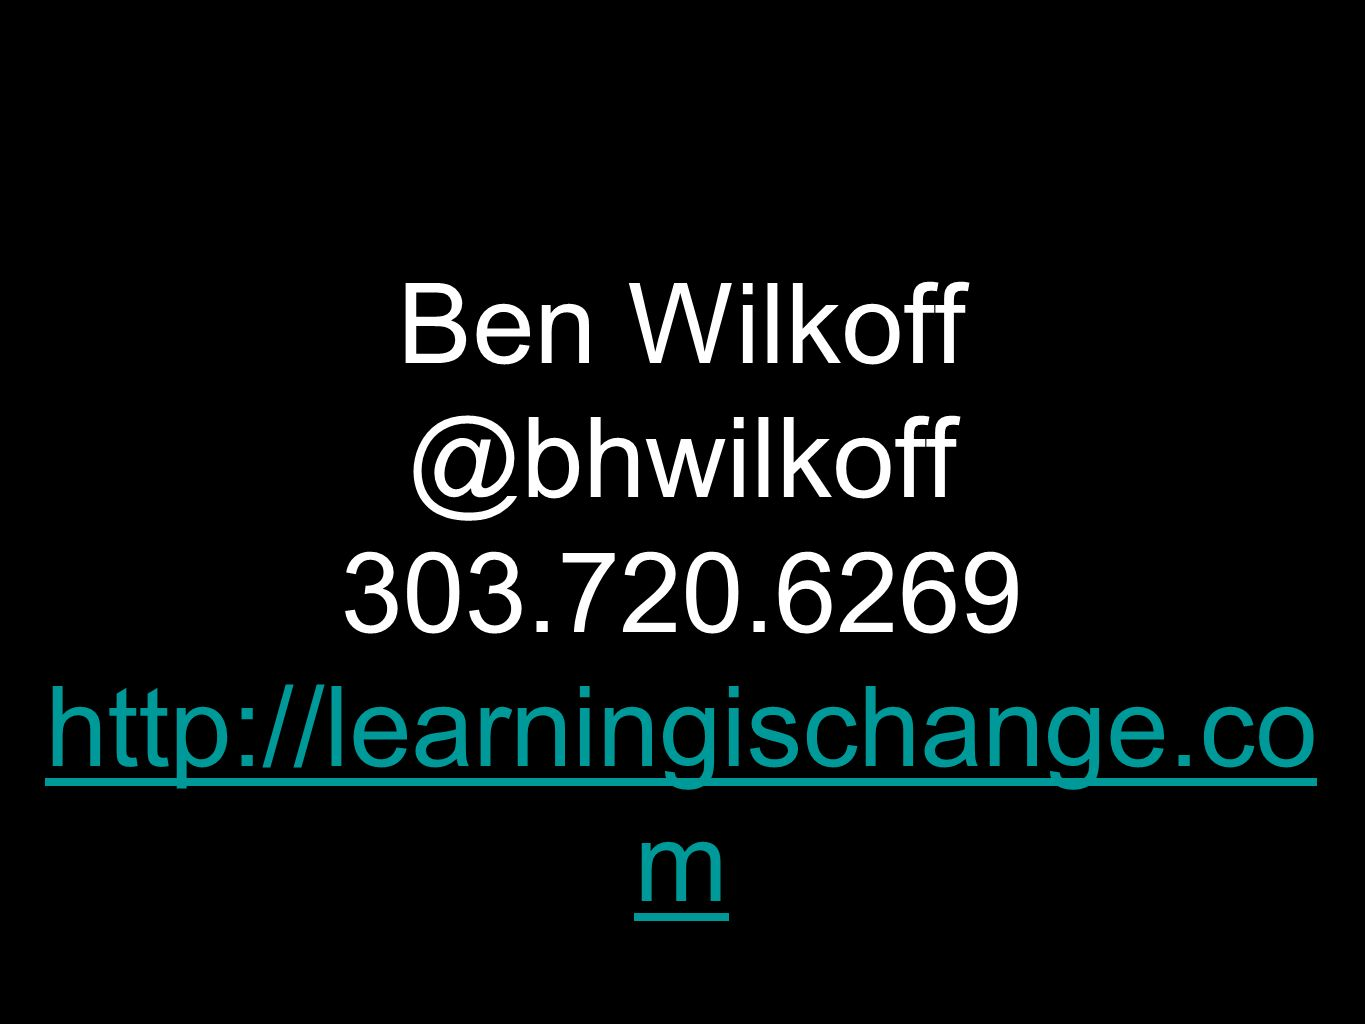 Ben Wilkoff @bhwilkoff 303.720.6269 http://learningischange.co m http://learningischange.co m